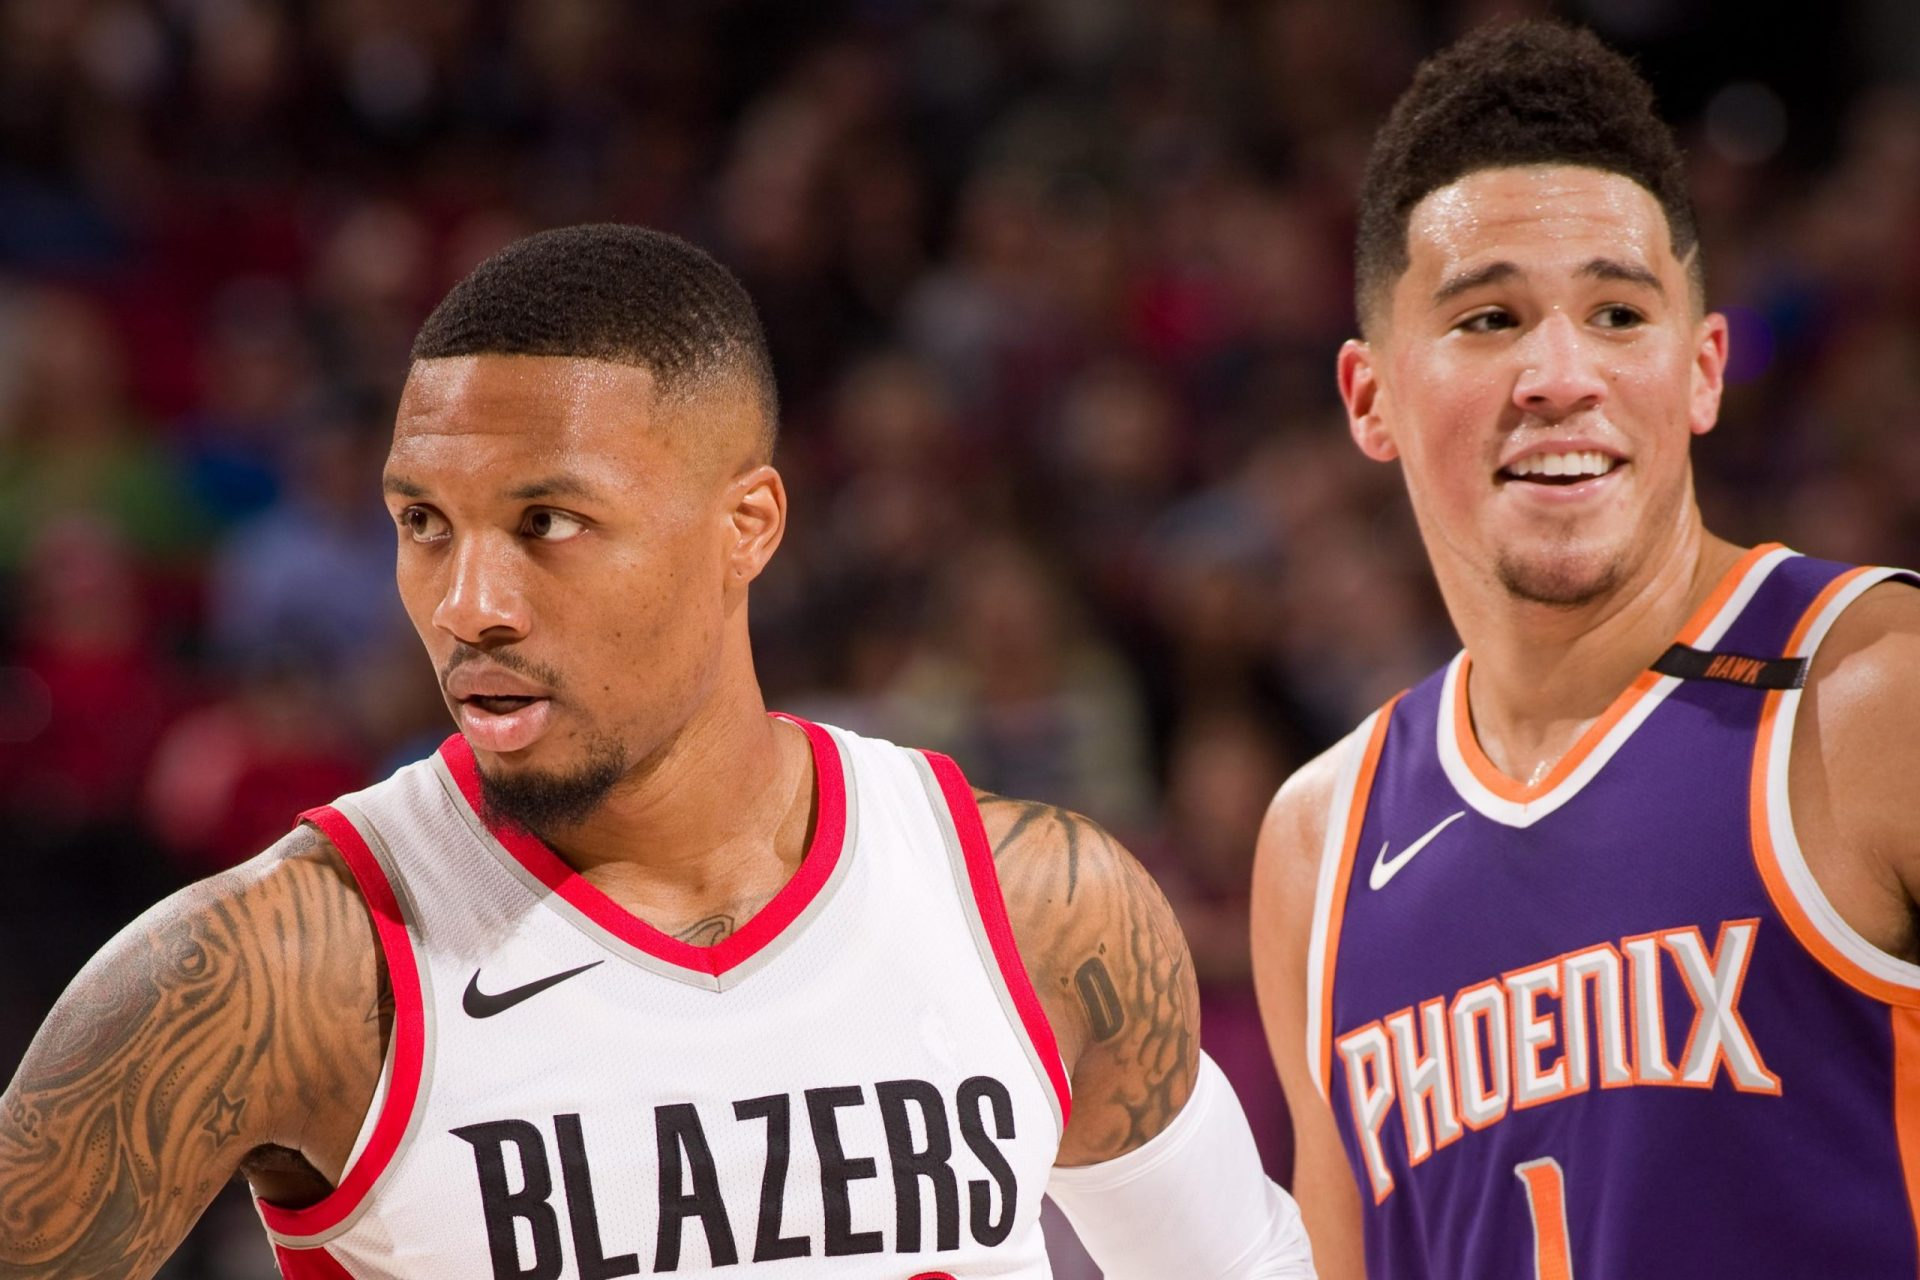 Damian Lillard Scores an outrageous 61 Points to bag crucial win, Phoenix Suns go 7-0 to keep their playoff hopes alive - THE SPORTS ROOM